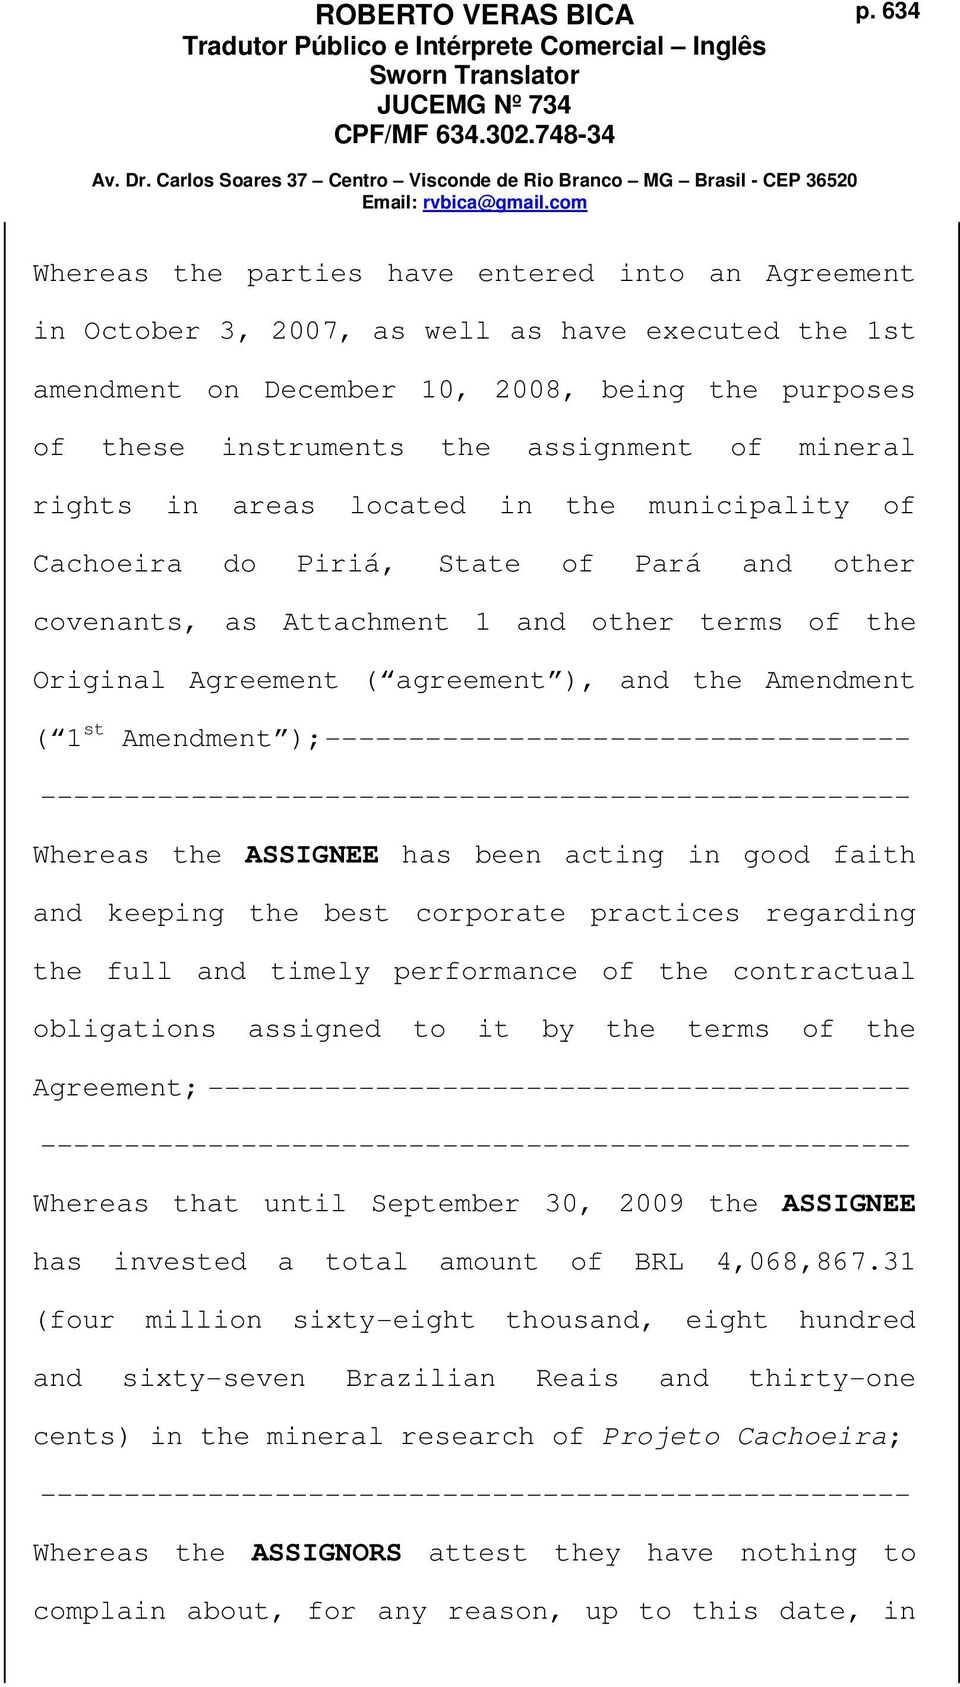 Amendment ( 1 st Amendment ); ----------------------------------- Whereas the ASSIGNEE has been acting in good faith and keeping the best corporate practices regarding the full and timely performance